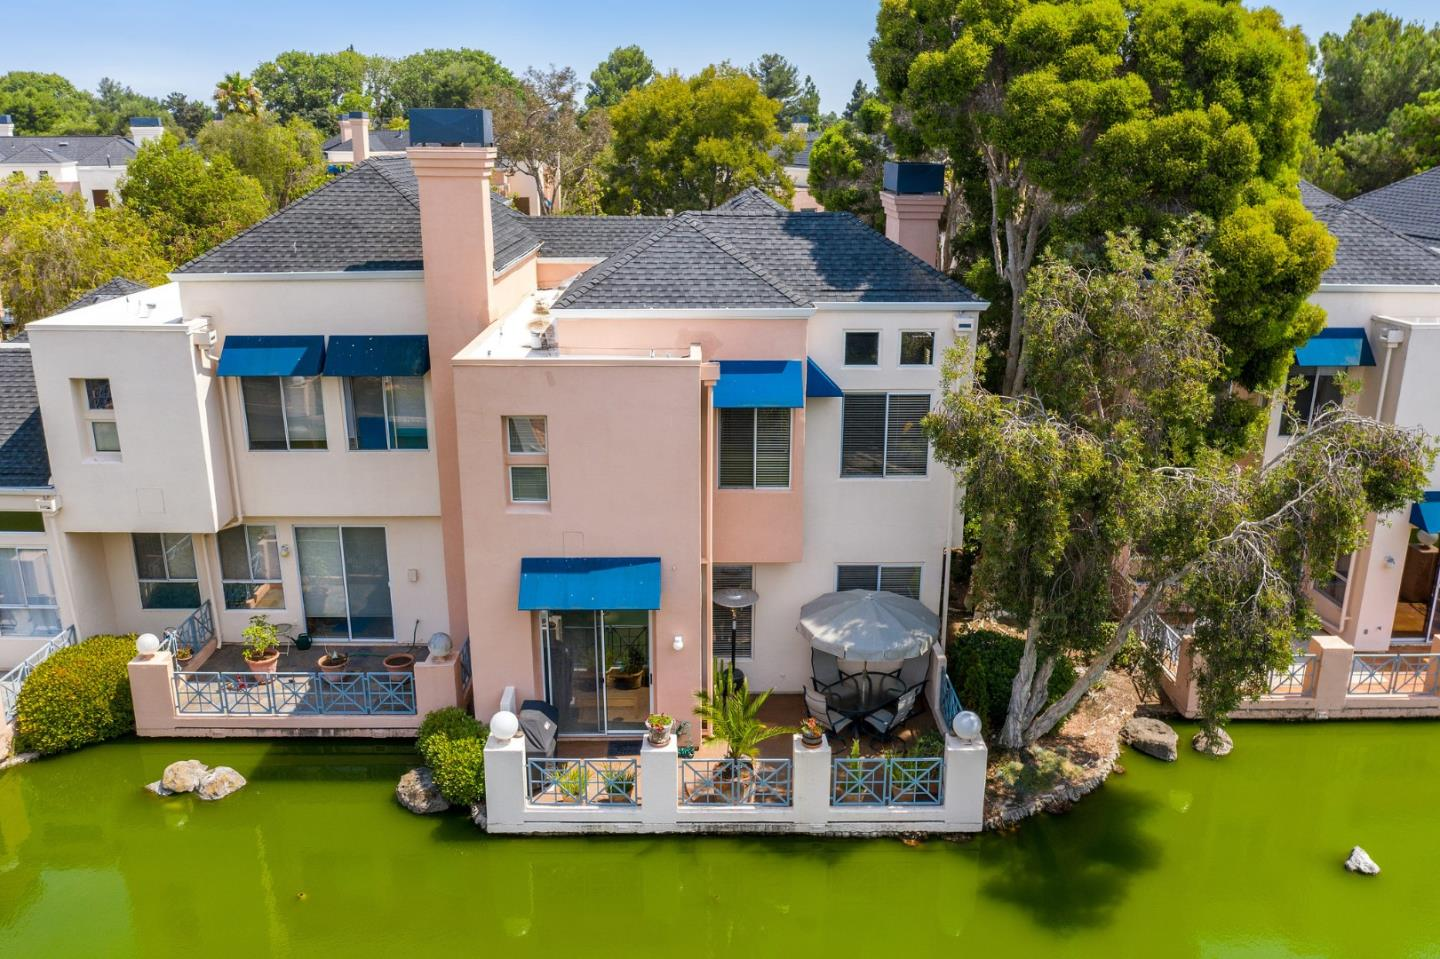 Situated along a private waterway in one of only two gated communities in Redwood Shores, this expansive home with designer updates and spectacular details throughout, boasts a rare floor-plan with 4 full bedrooms and 3 full bathrooms.  Fab kitchen featuring custom cabinetry, a paneled refrigerator, top-of-the-line stainless steel appliances, gorgeous granite counter-tops & a wine refrigerator.  Expansive primary bedroom featuring water views, vaulted ceilings and an en-suite luxe bathroom boasting dual vanity sinks and a walk-in shower.  Don't miss the spacious walk-in closet.  Two more bedrooms upstairs, one with its own private balcony, plus a bonus area that could be used as an office area or wellness space. Located within award winning Belmont Redwood Shores School District (buyer to verify enrollment). Located near Bay trails, parks, tennis courts, the Marketplace shopping center, Bay Club and major Silicon Valley employers. HOA:  $510 per month. RSOA:  $84.00 per year